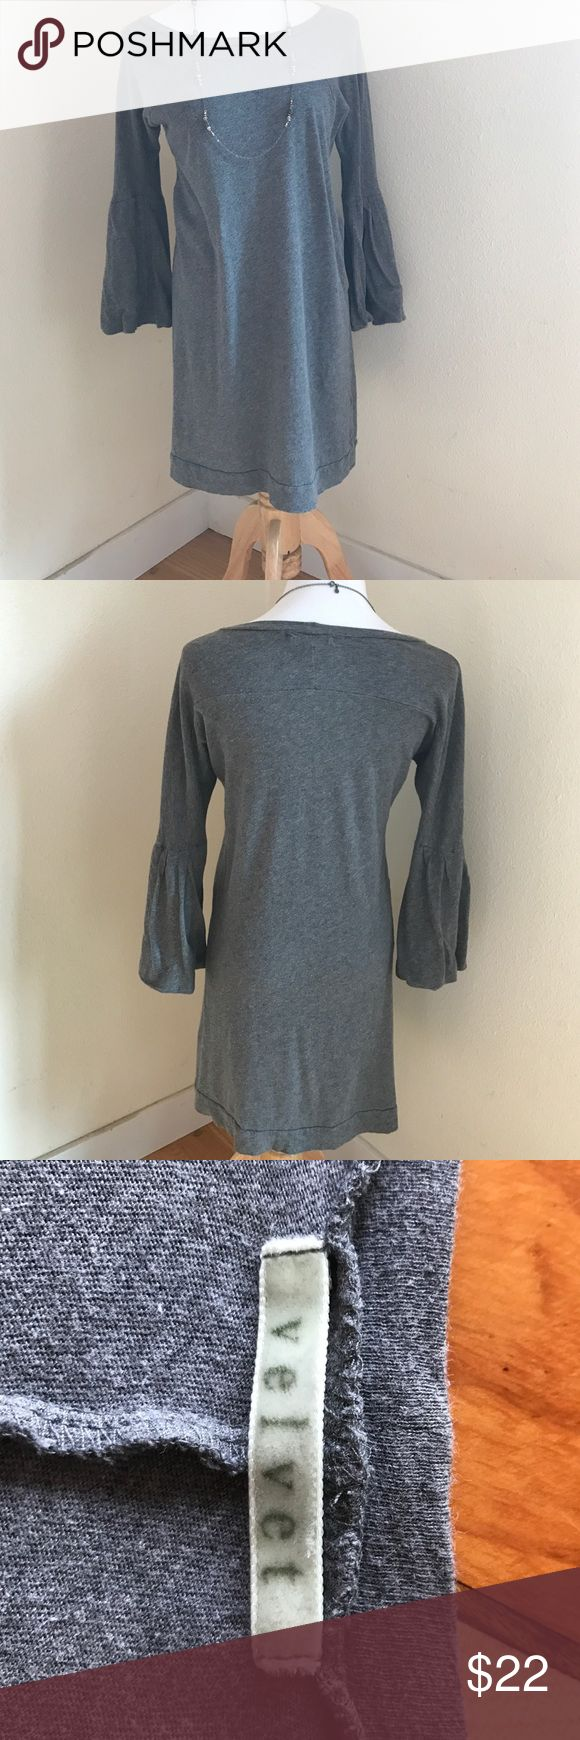 Velvet by Graham Spencer Tunic Velvet by Graham Spencer Tunic in grey. Soft and comfy with jeans or leggings. Bell cuffs. Good used condition Velvet Tops Tunics